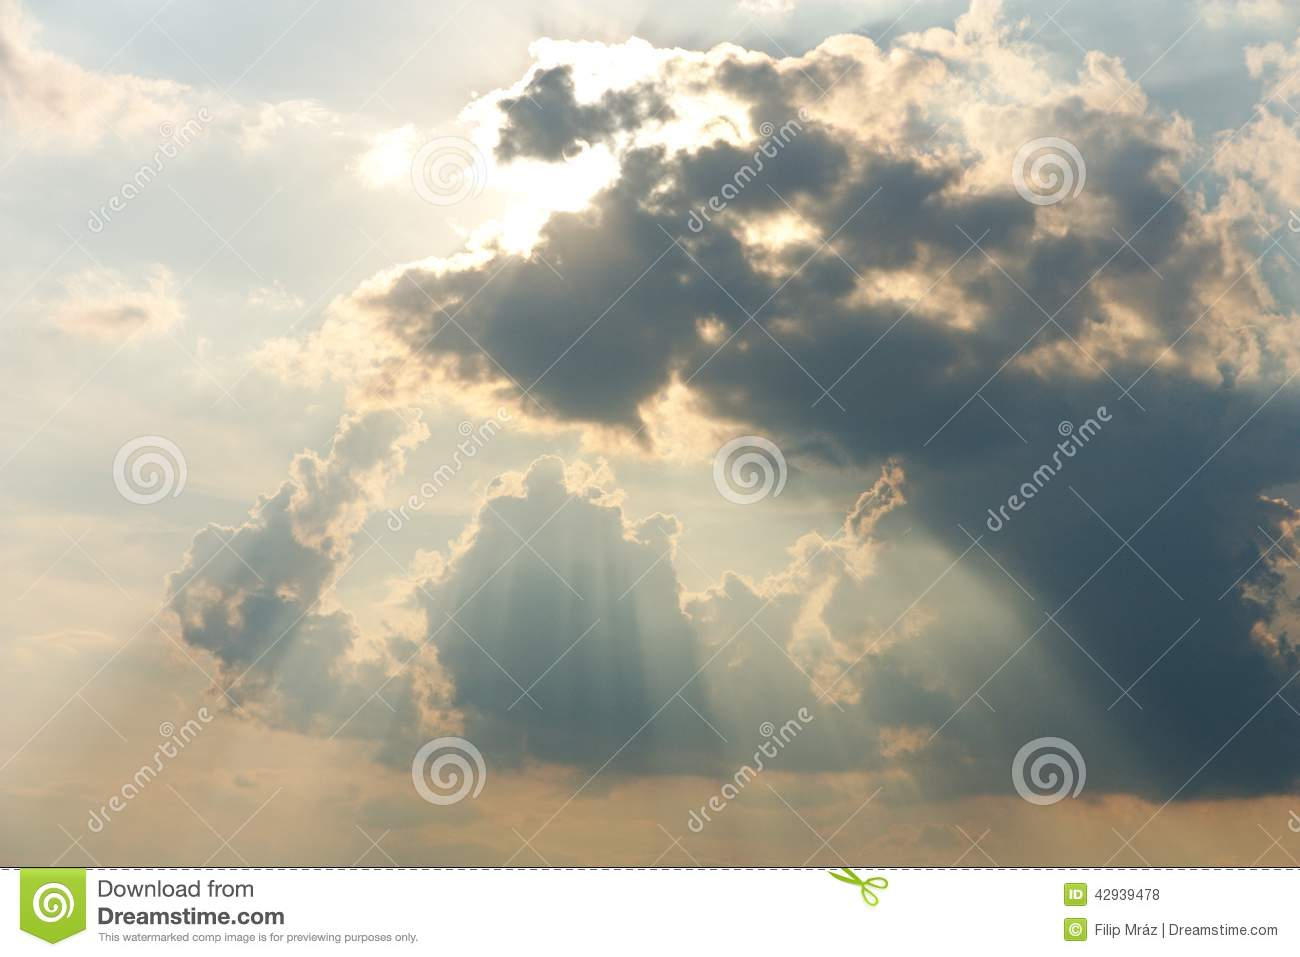 Rays in the clouds